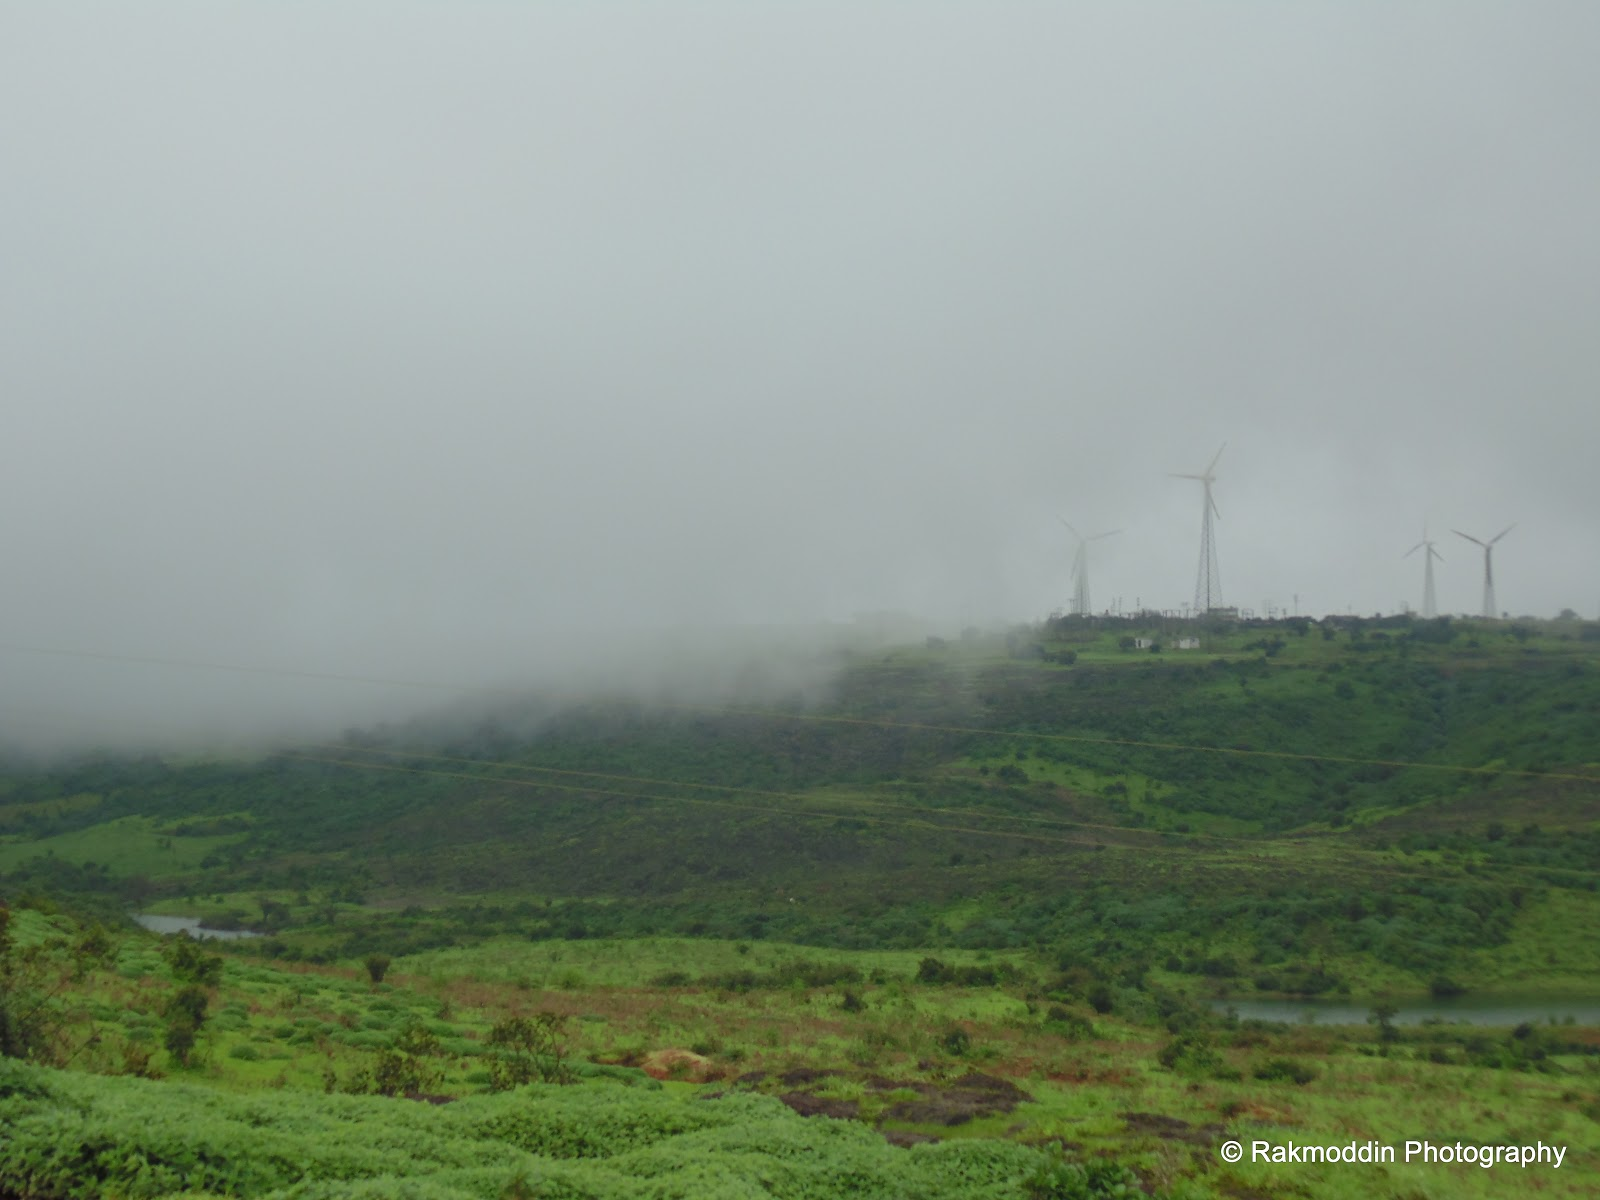 Chalkewadi windmills farms near Satara